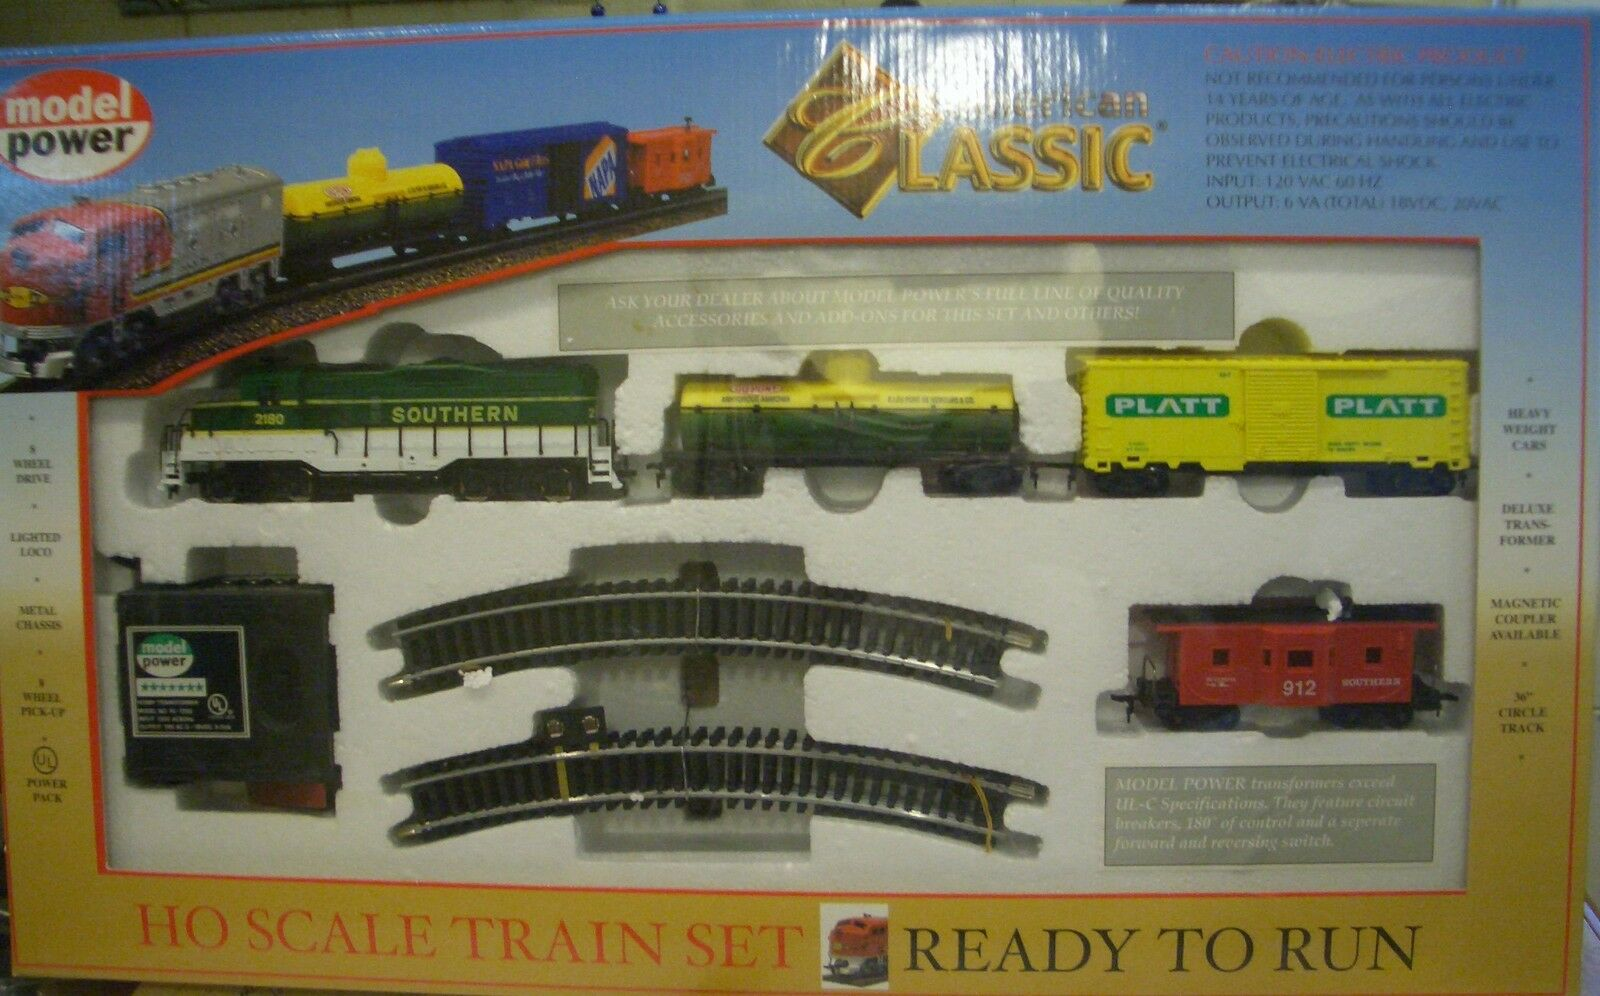 HO TRAINS CLASSIC TRAIN SET SOUTHERN W  TRACK & POWER PACK   1028 GP-9 2180 LOCO